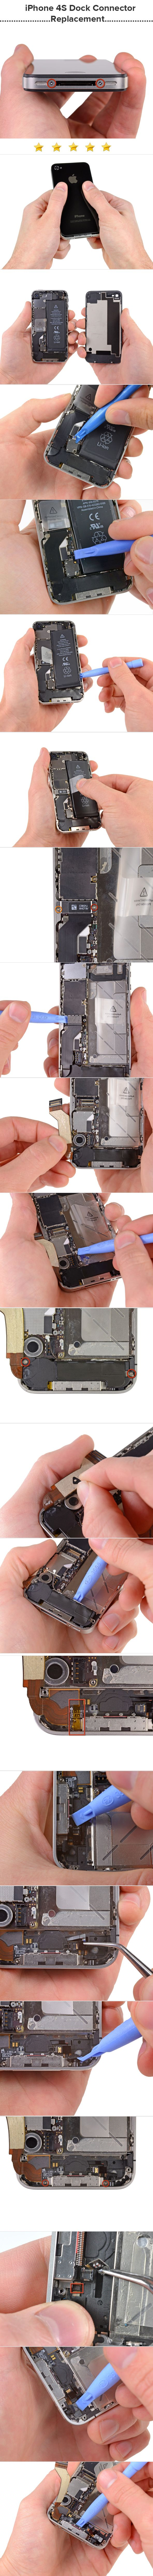 iPhone 4S Dock Connector Replacement